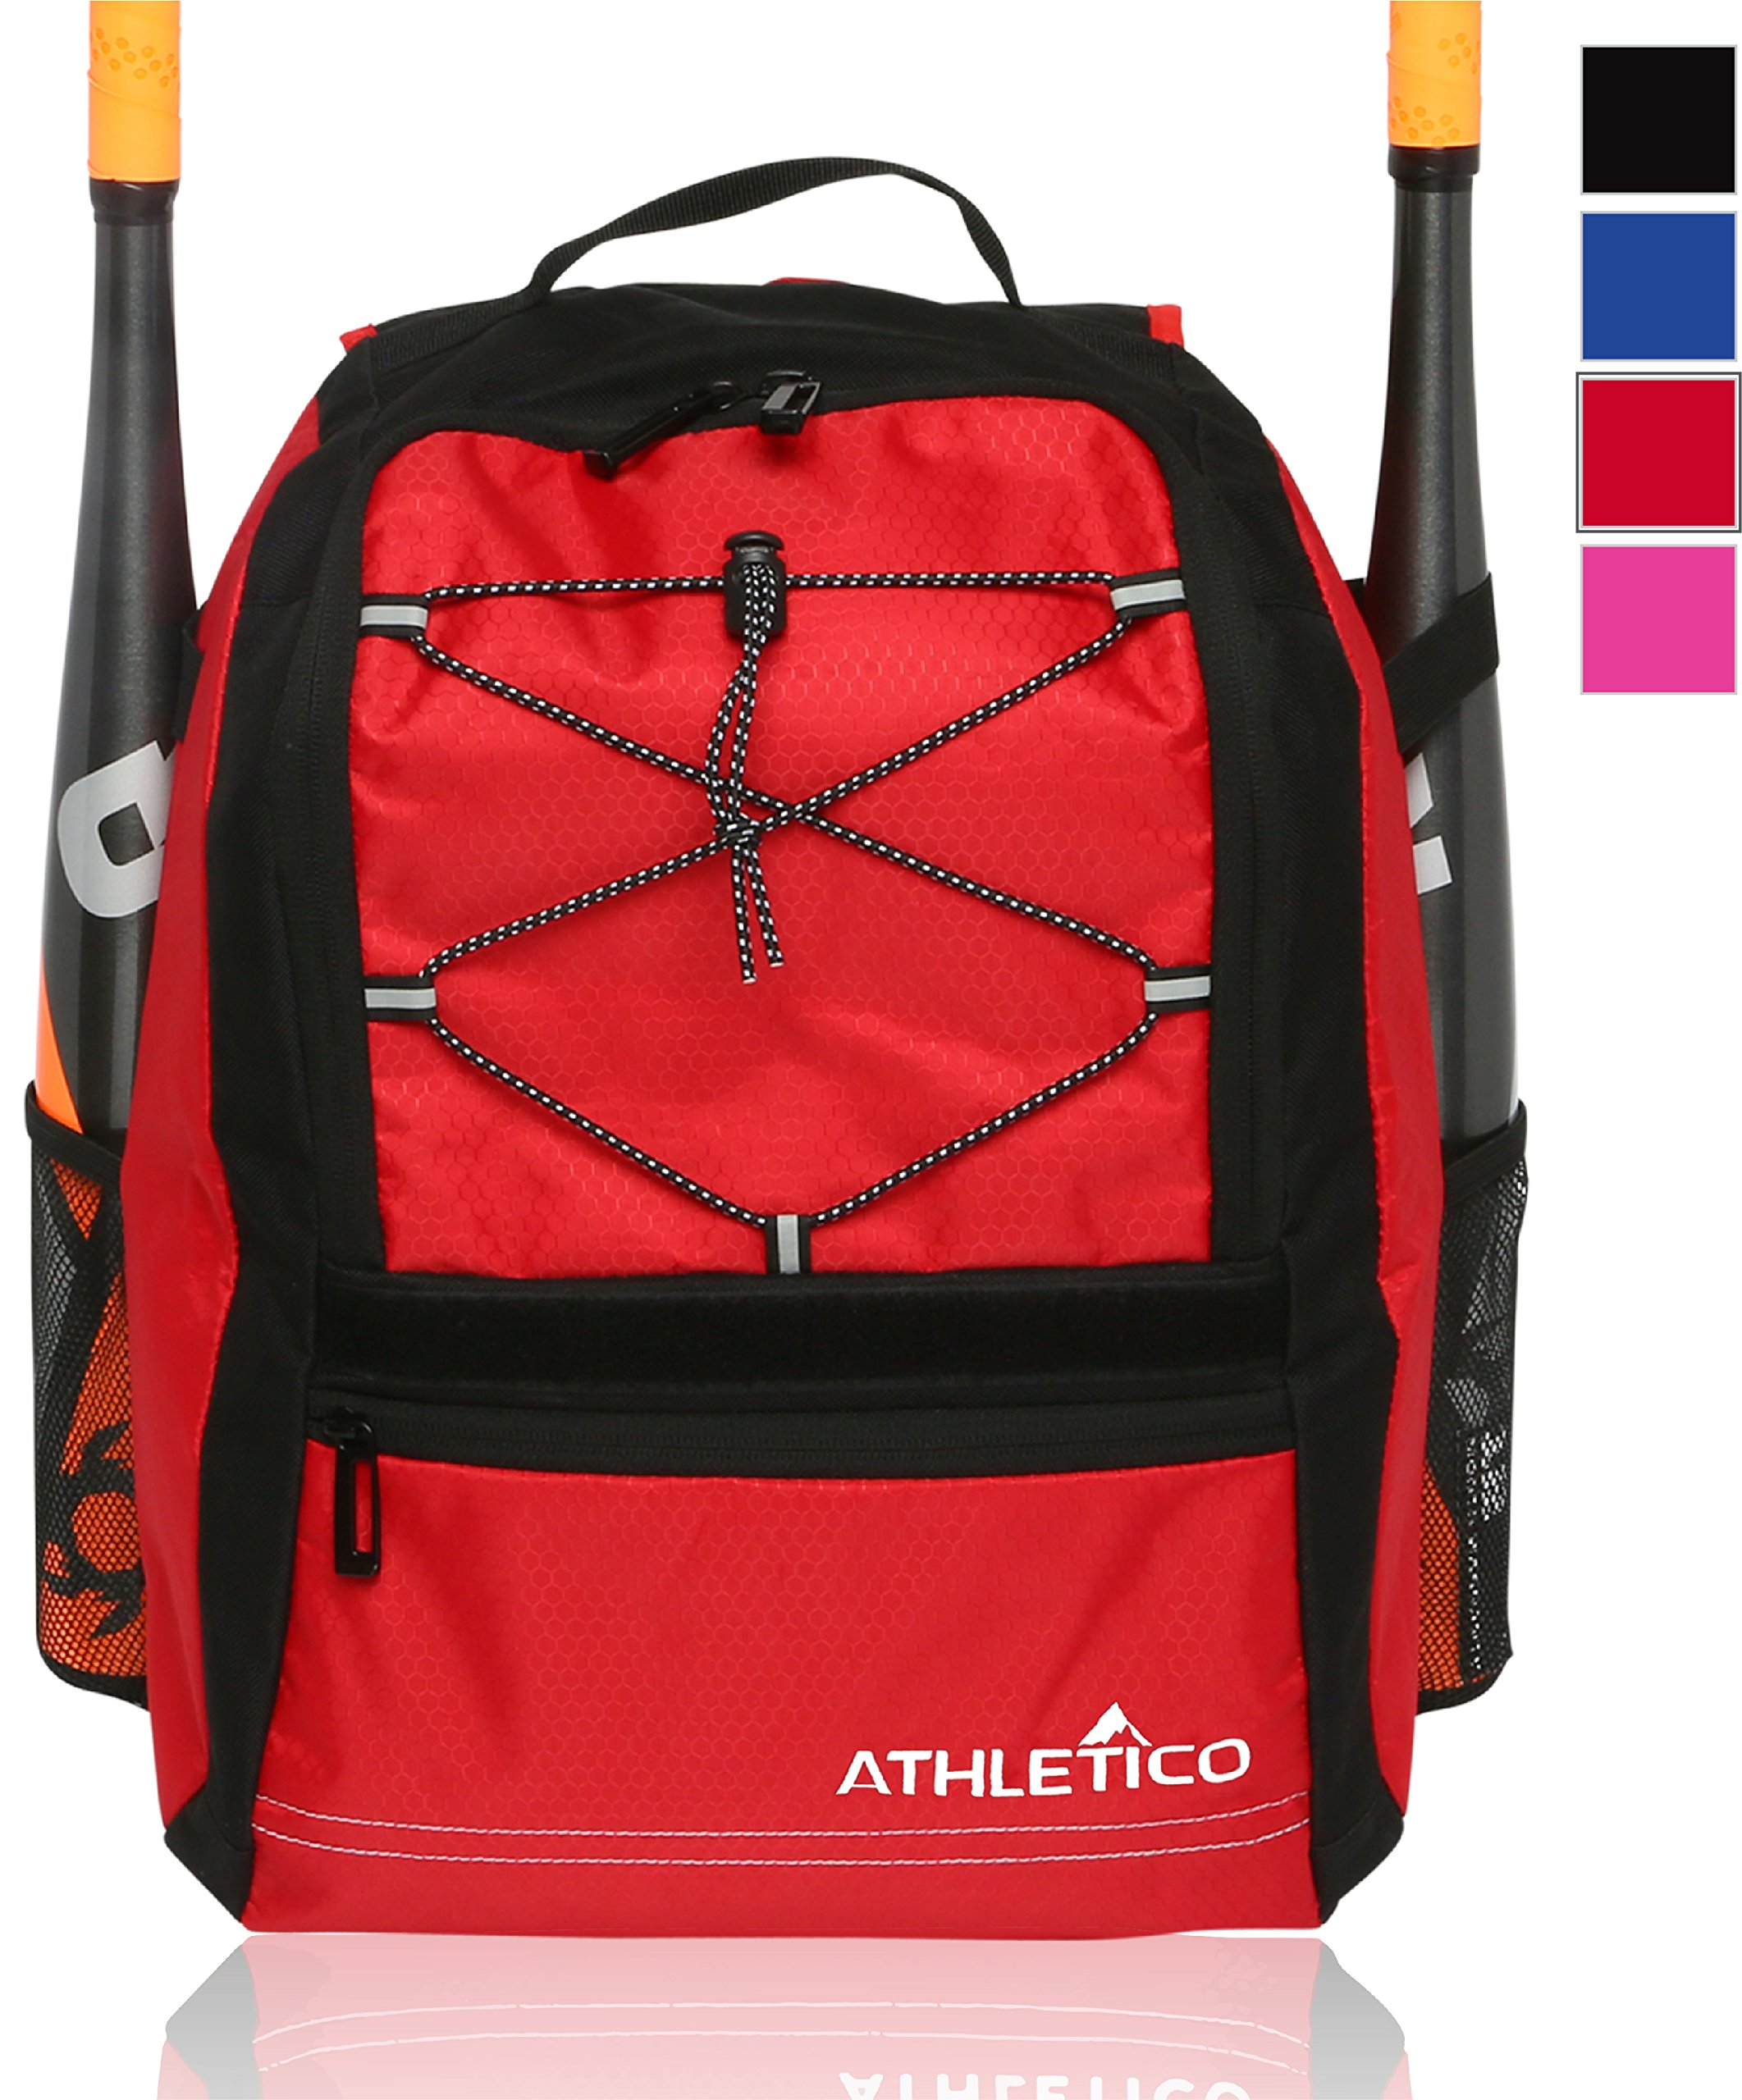 Athletico Youth Baseball Bat Bag - Backpack for Baseball, T-Ball & Softball Equipment & Gear   Holds Bat, Helmet, Glove   Fence Hook (Red) by Athletico